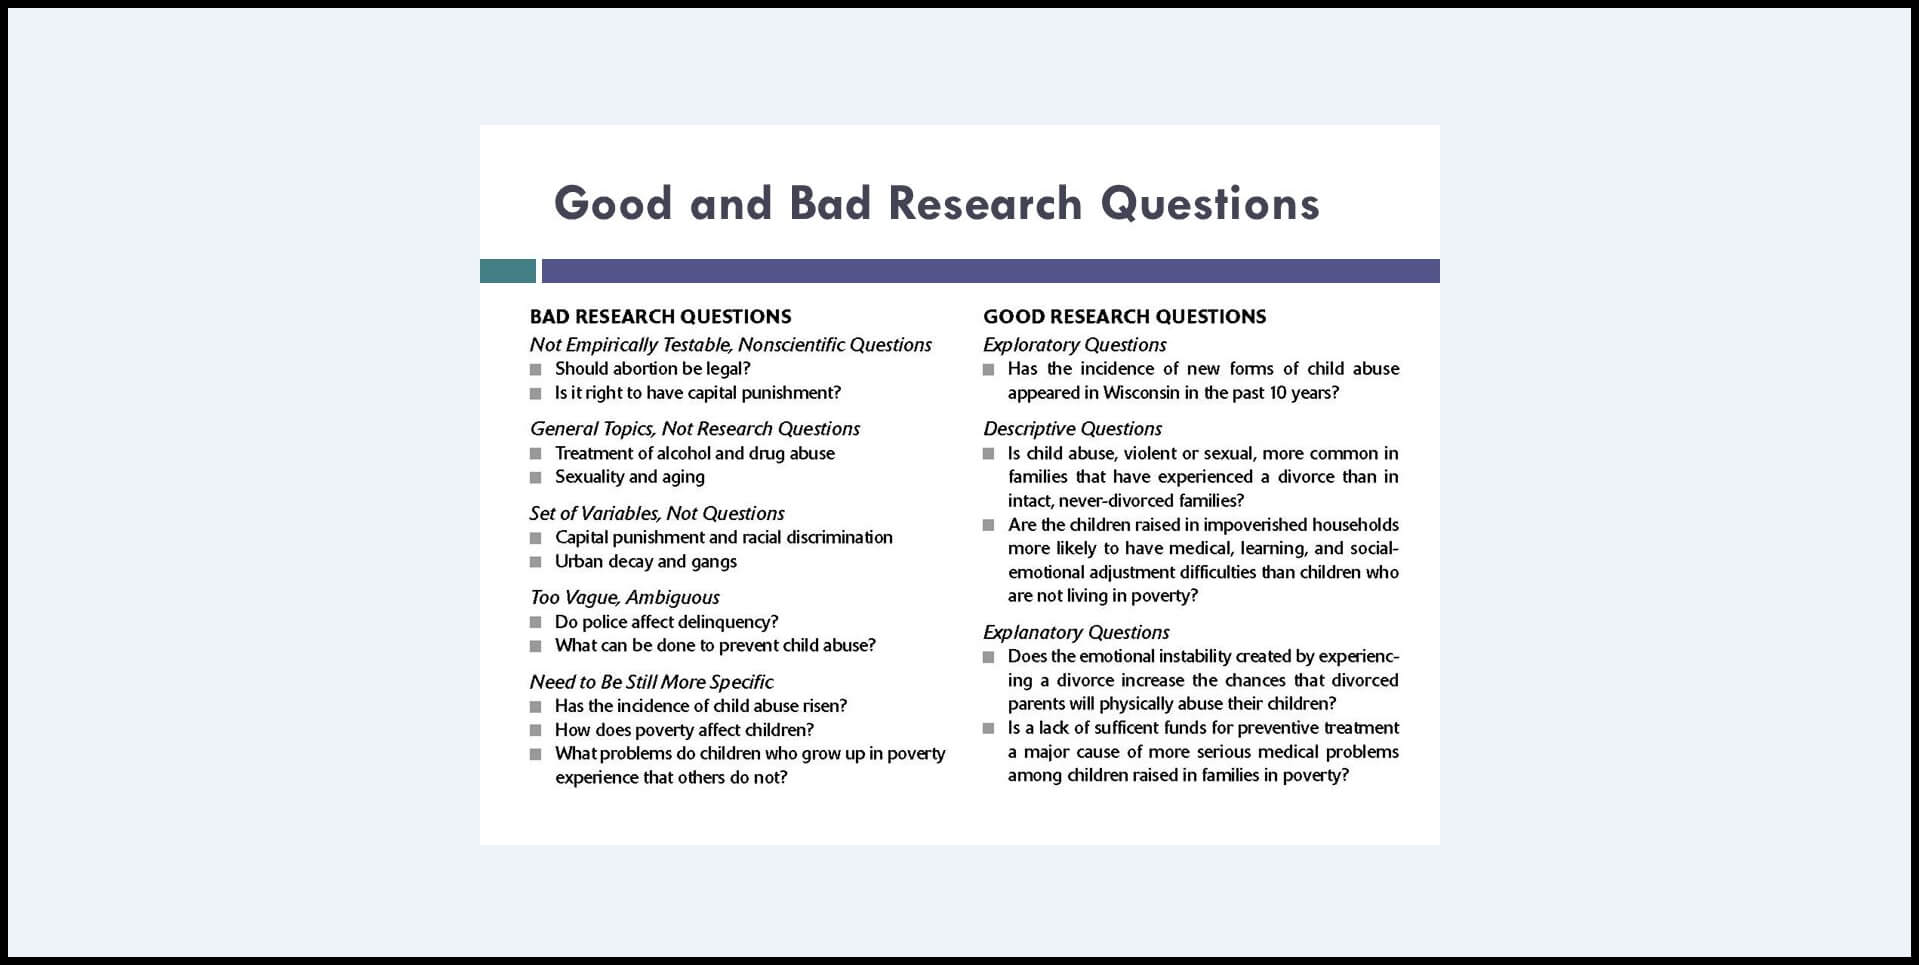 006 Research Question Examples Paper Great Striking Topics Easy Argumentative For College Students Freshmen Full